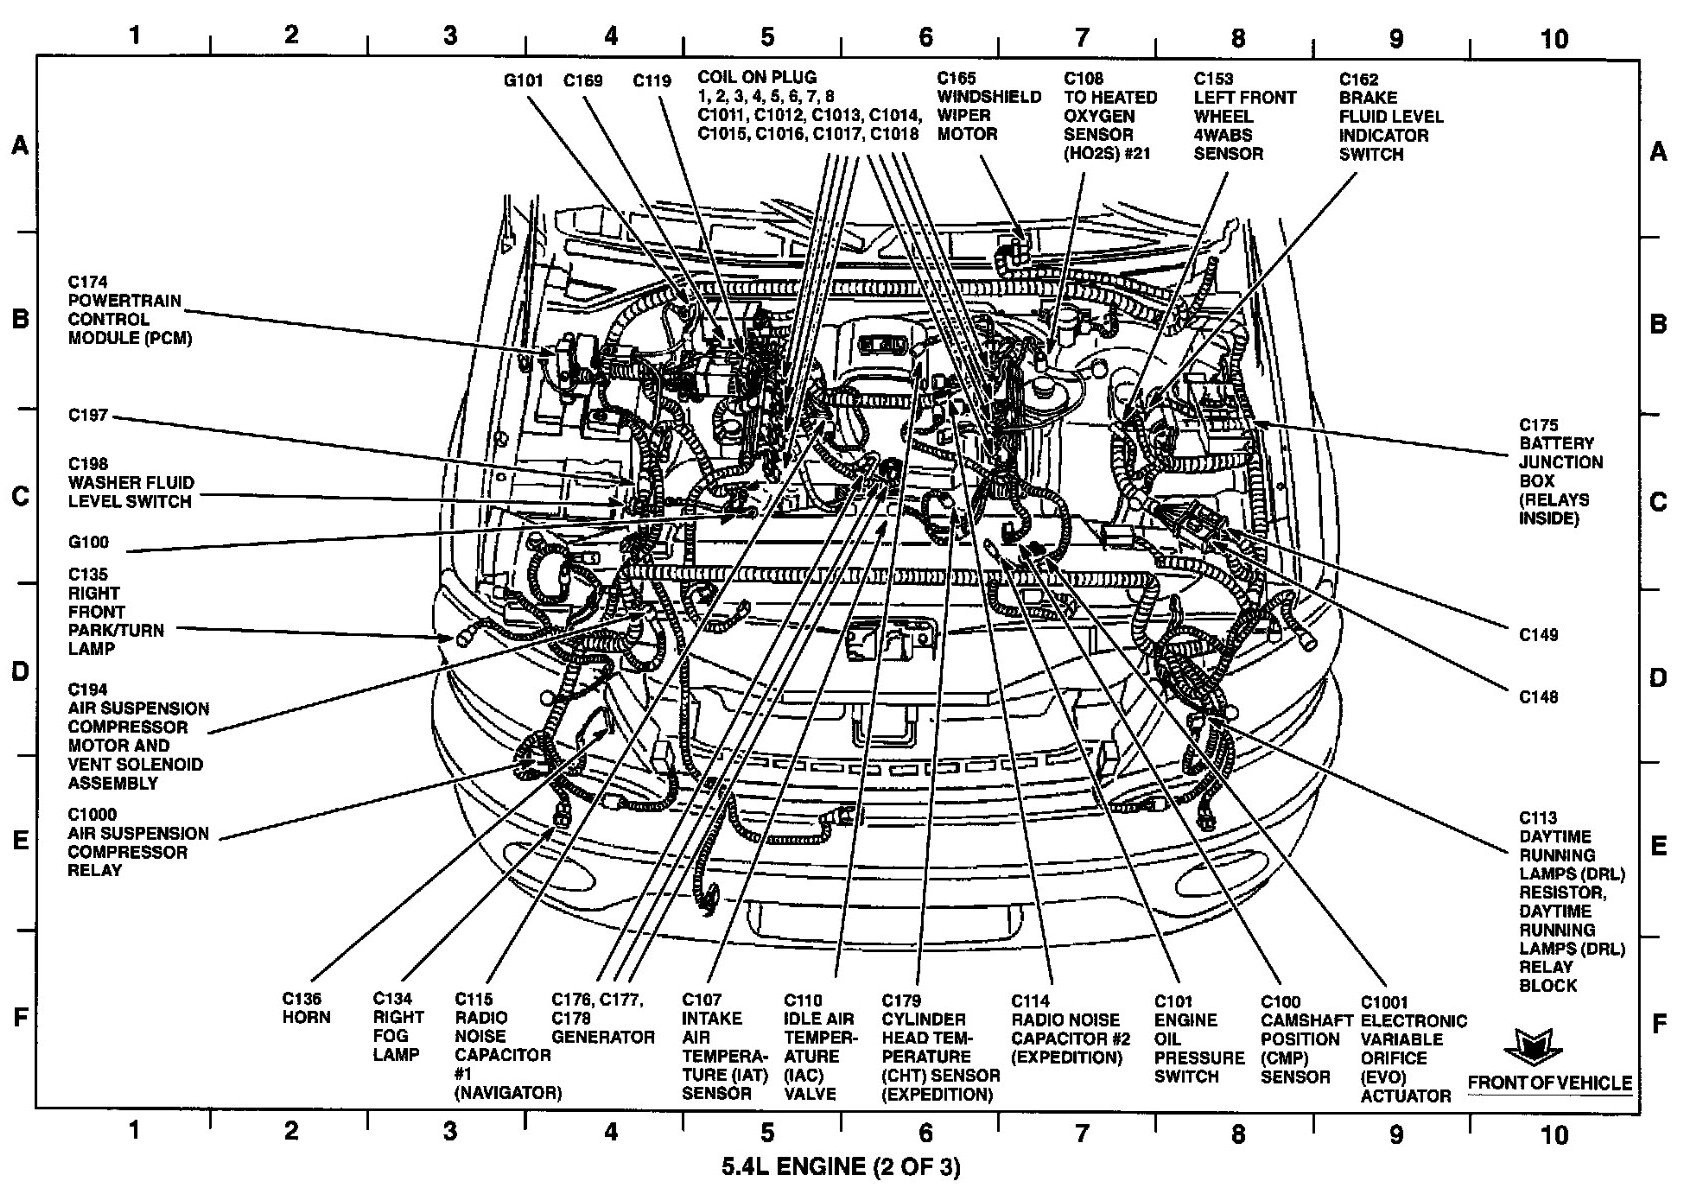 [FPER_4992]  2013 Bmw 328i Wiring Diagram | Wiring Diagram | 1991 Bmw 525i Engine Diagram |  | Wiring Diagram - Autoscout24